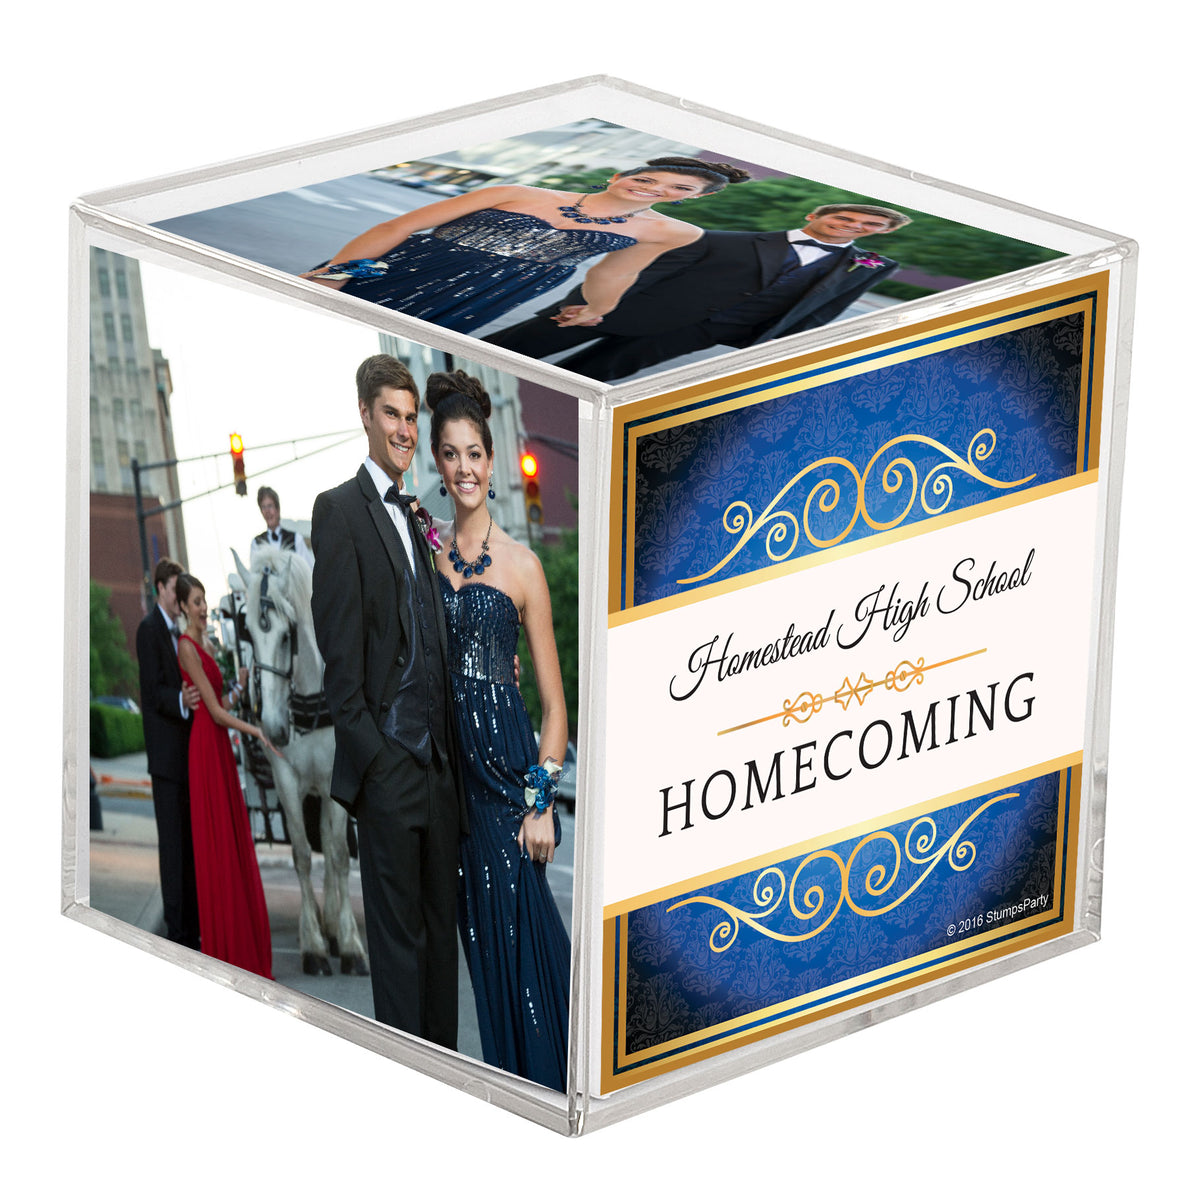 Belle of the Ball Personalized Photo Cube